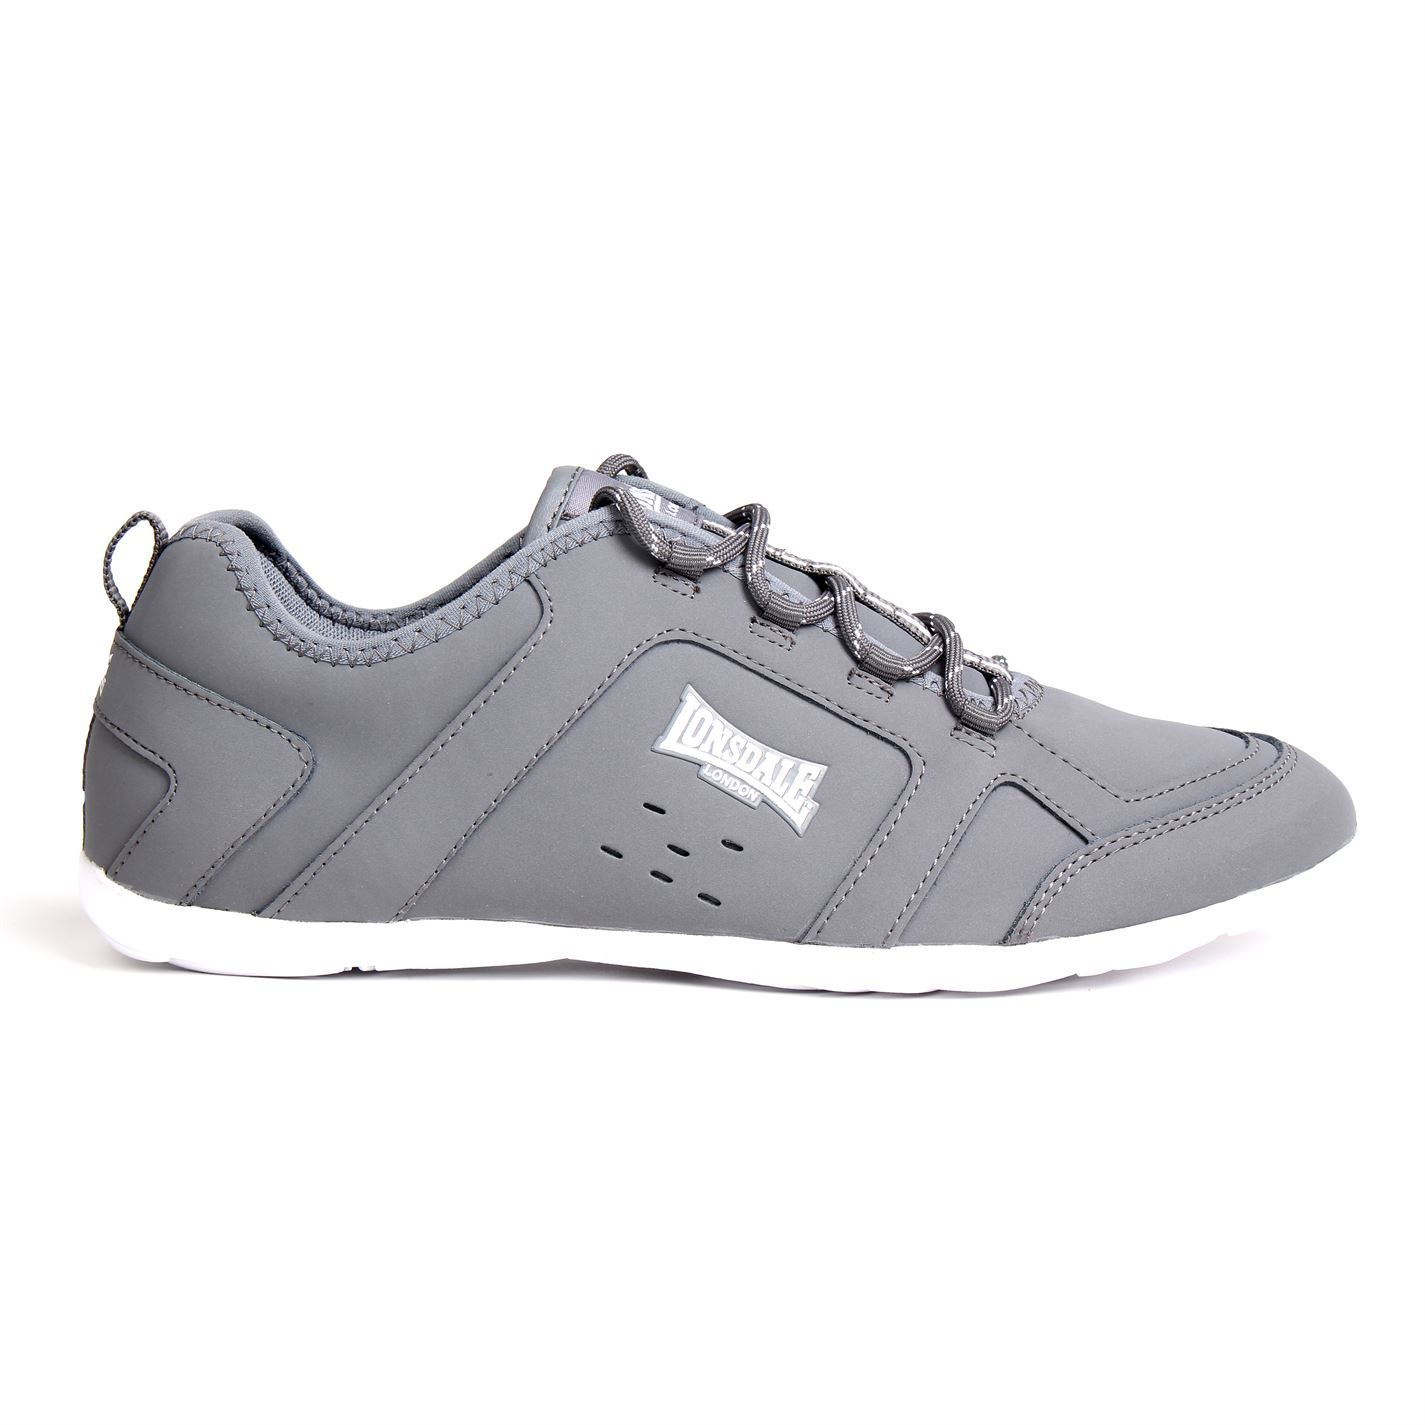 Zapatos grises Lonsdale para mujer Zu9HImVS99